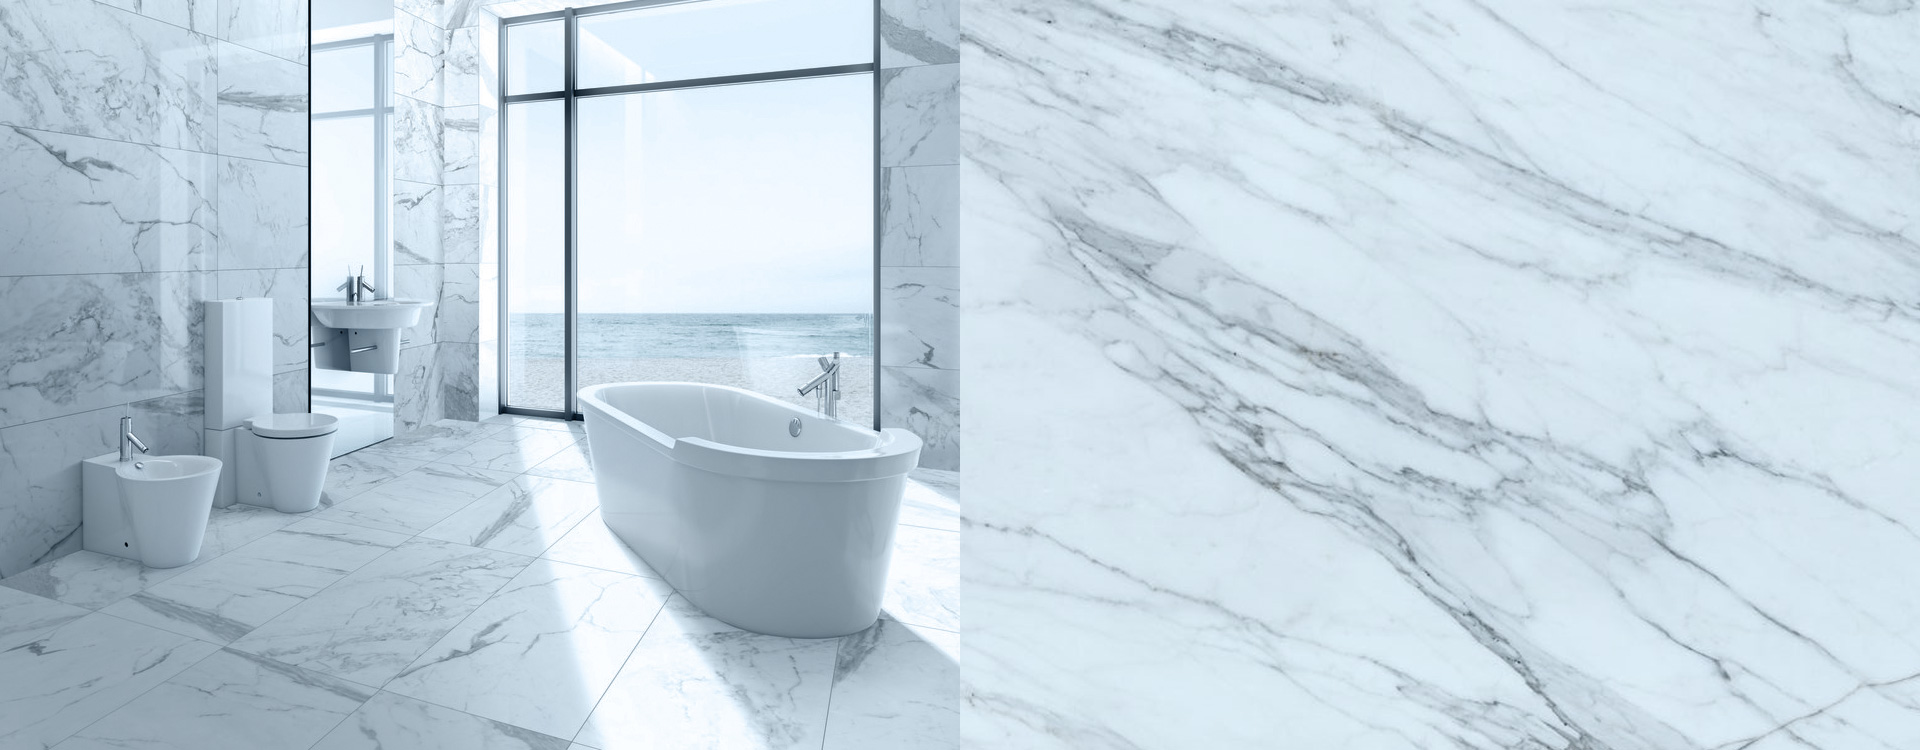 A&S Home Sells Signature Countertops, Tile, Cabinets, Furnishing ...